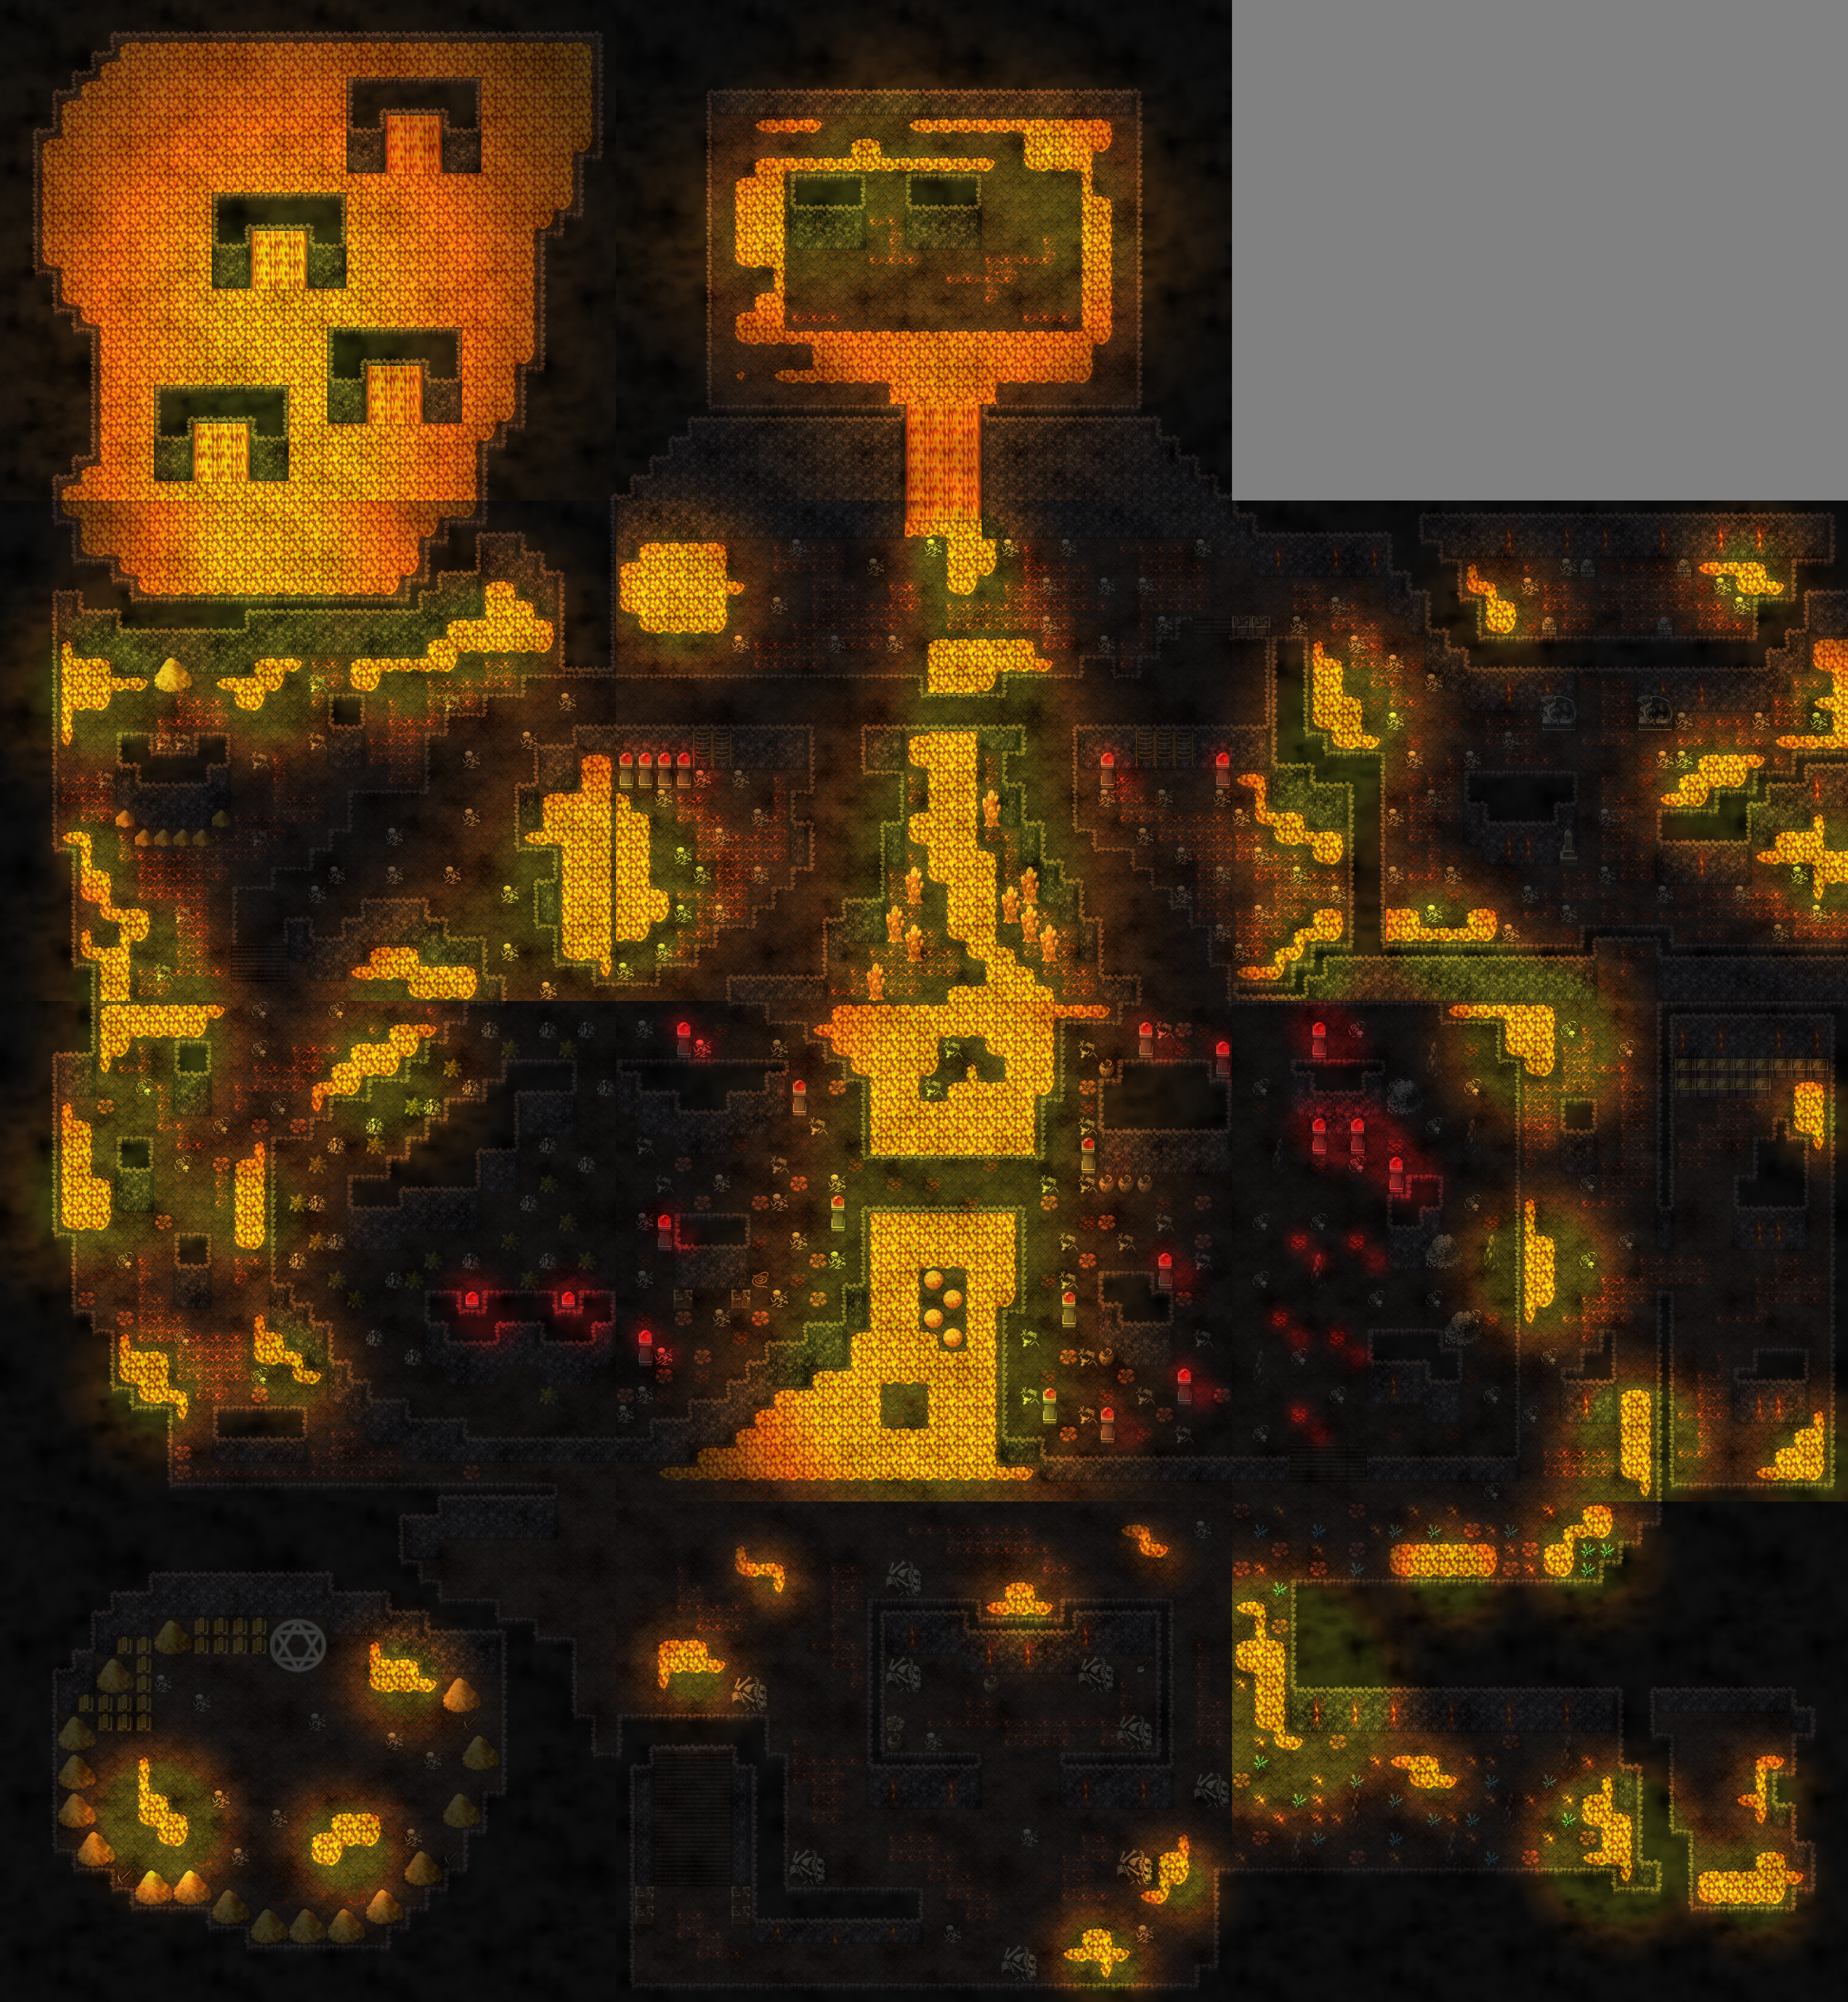 Lava Dungeon Map - Design and Creativity - Ascension Game Dev on